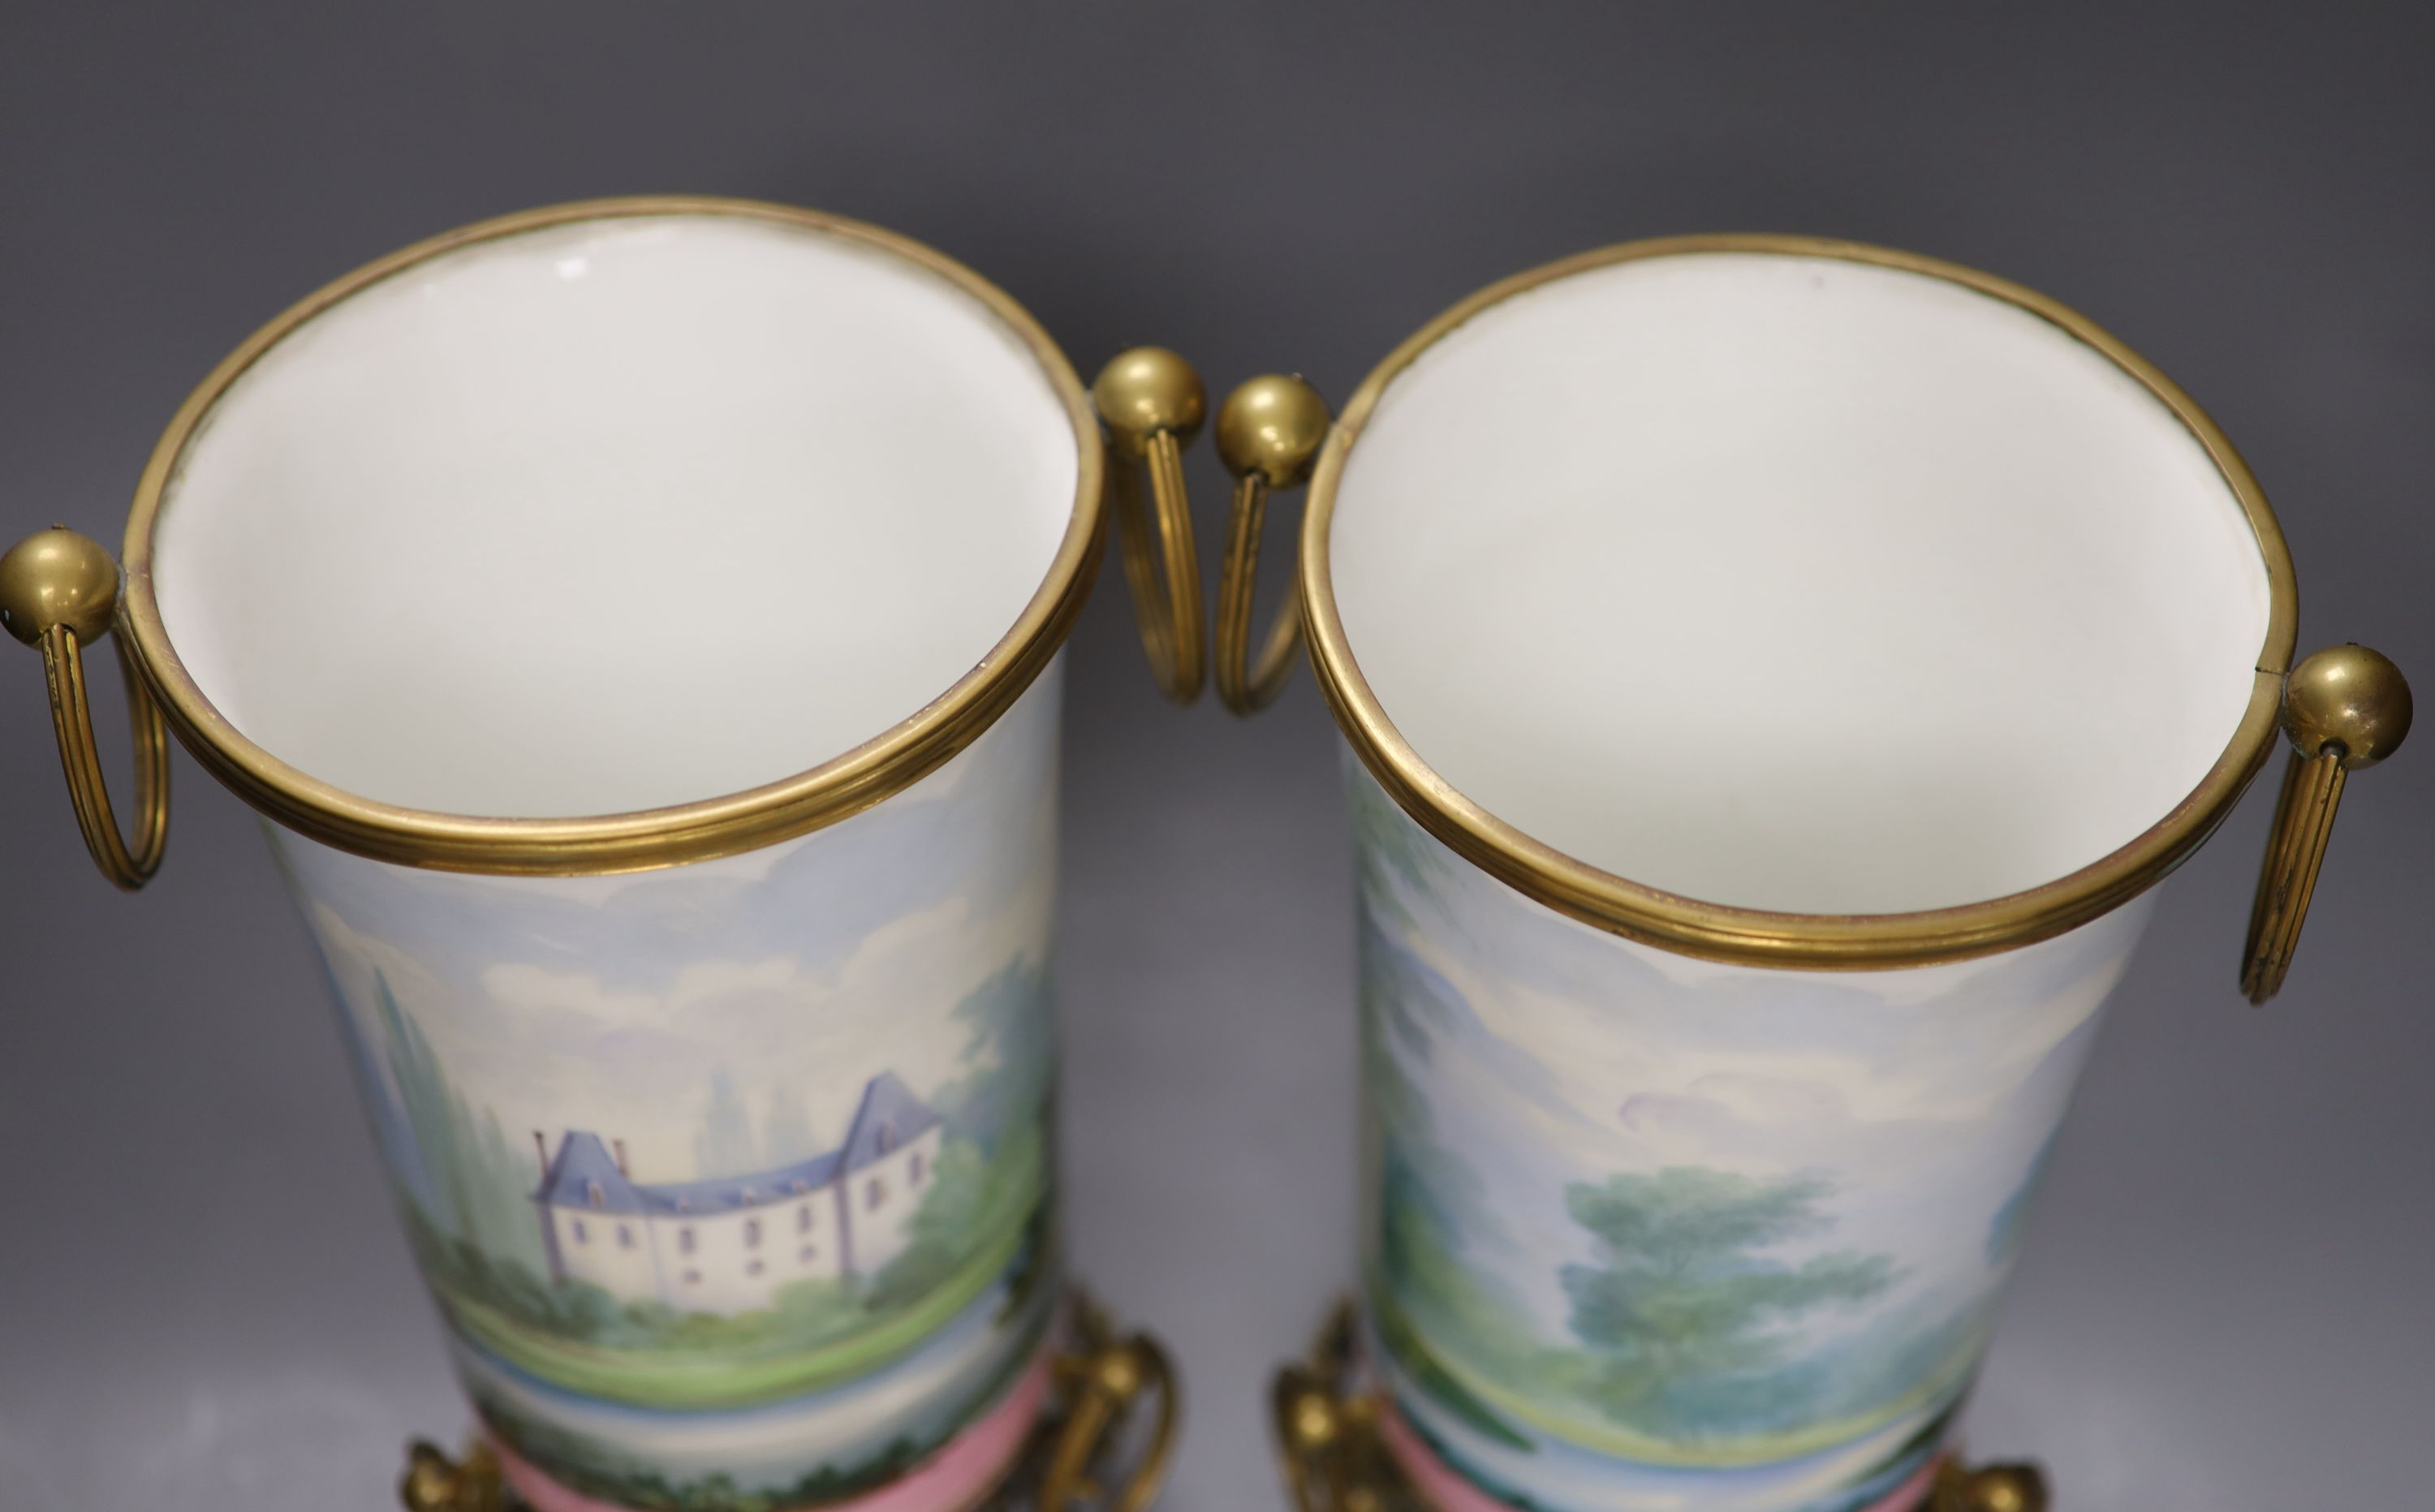 A pair of late 19th century Paris porcelain and gilt metal mounted vases, height 33cmCONDITION: Good - Image 4 of 4